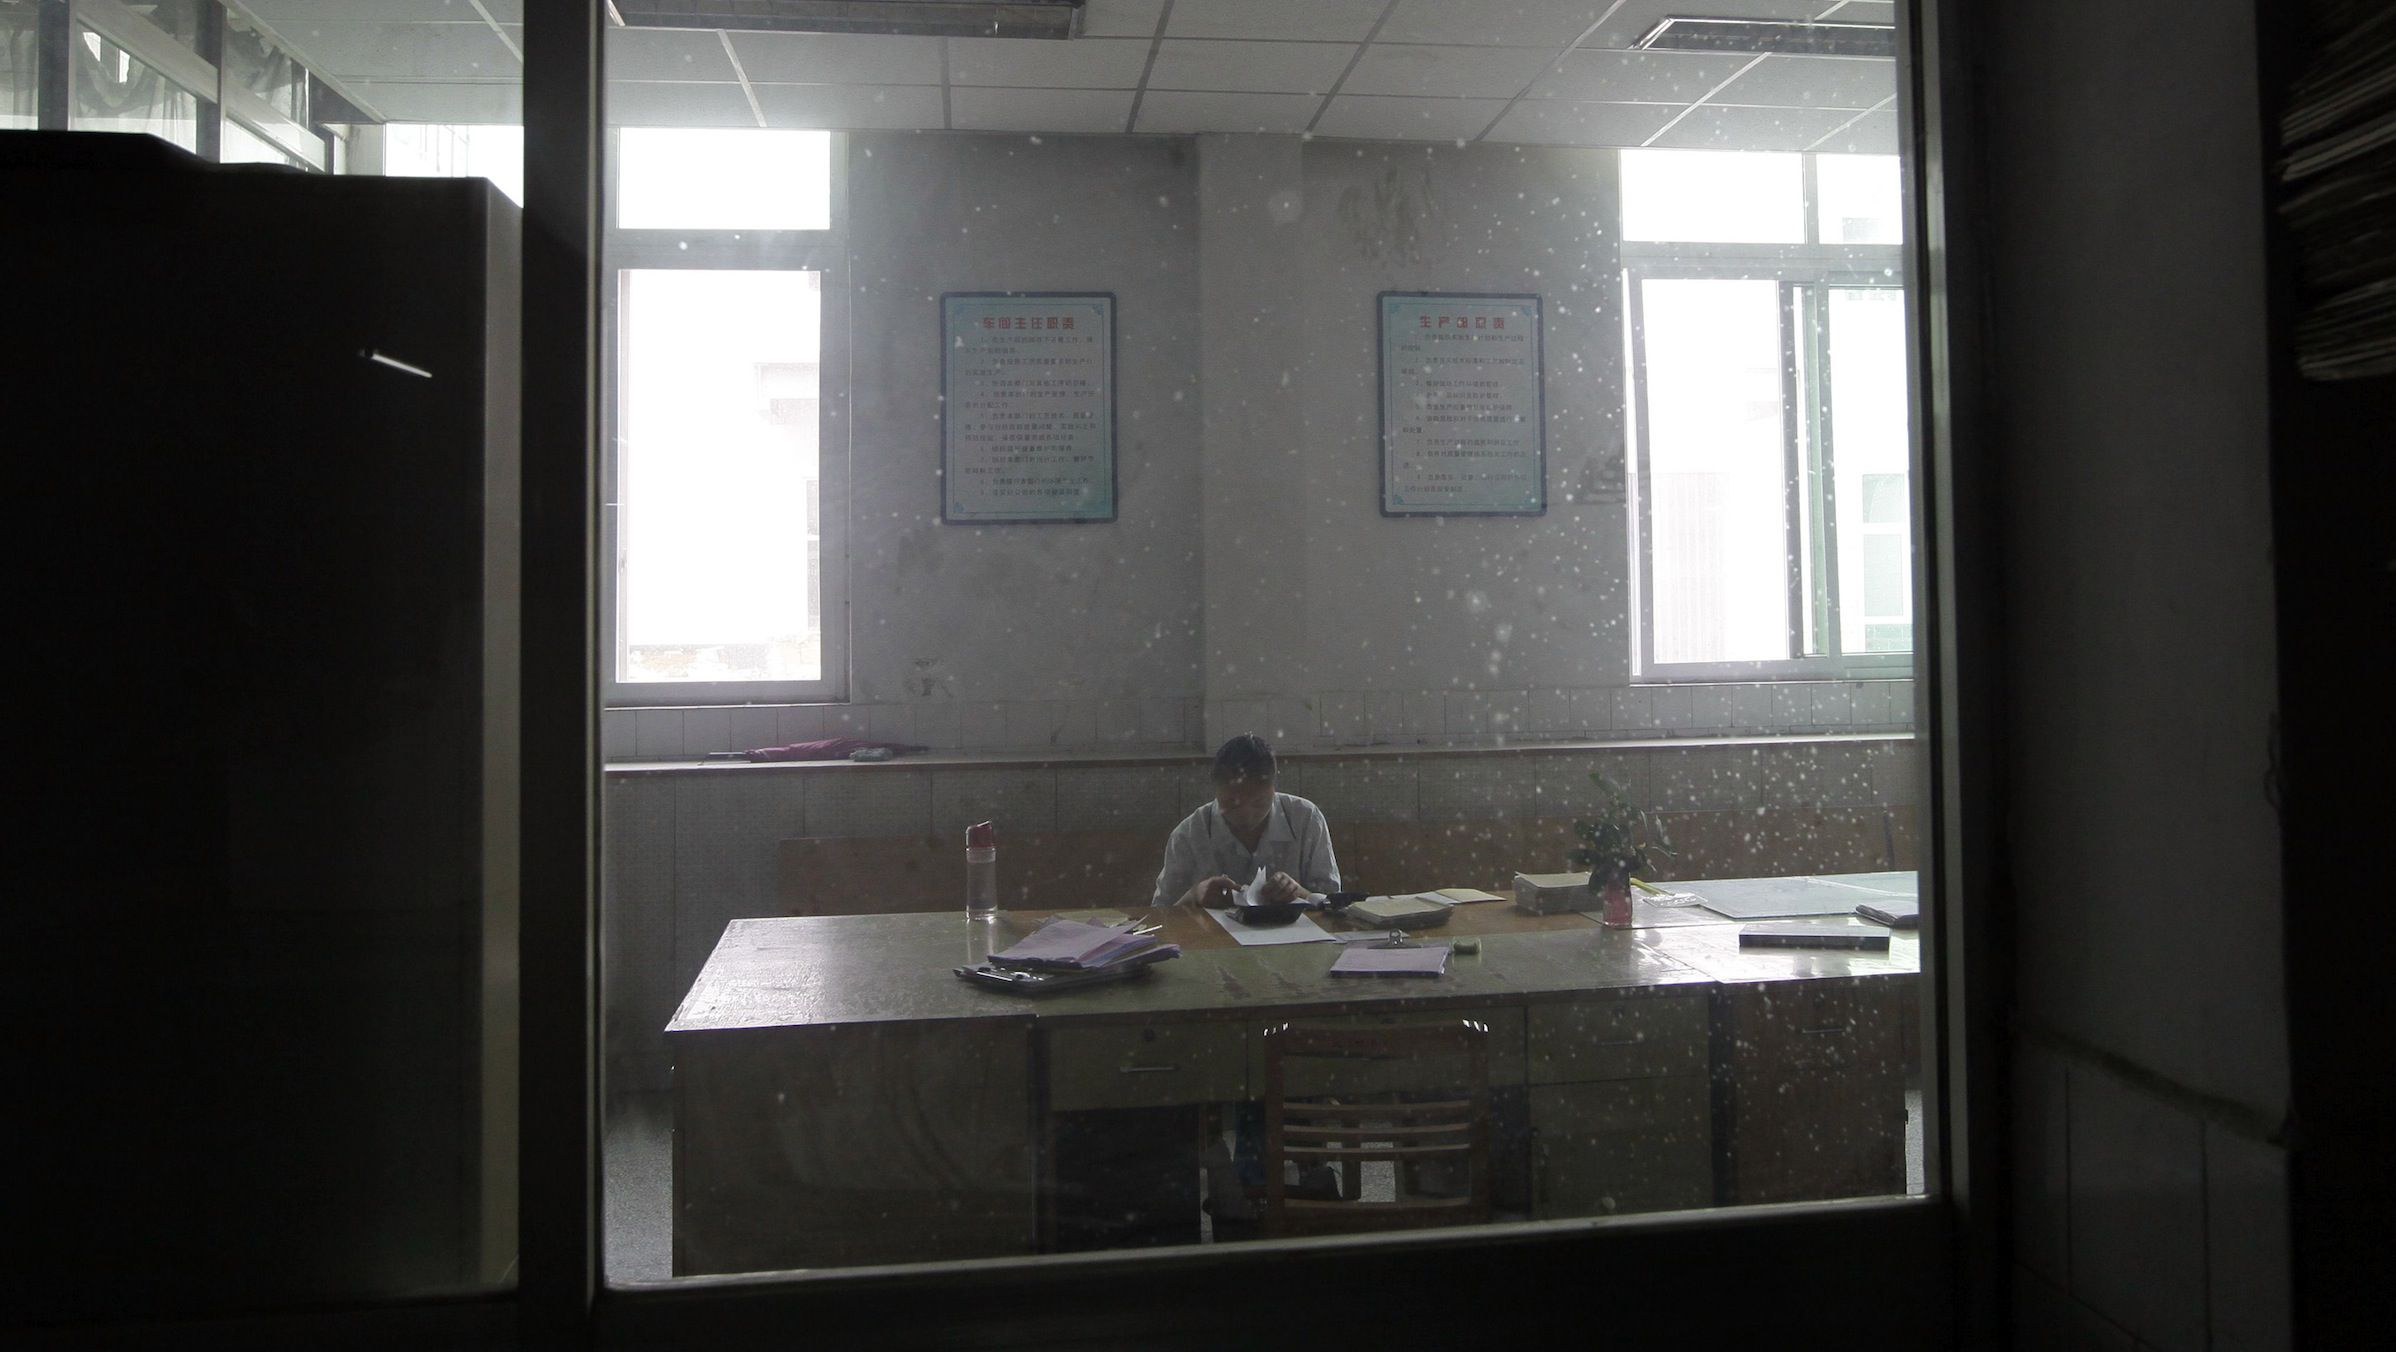 A woman works at an office of a printing factory of the Nanjie Cun Group in Nanjie village of Luohe city in China's central Henan province September 24, 2012. Nanjie village, with more than 3,100 residents, is touted to be one of the remaining models of communist China, where the principles of morality and collectivism of the late Chairman Mao still strictly guide the people's daily lives. Aside from free housing, healthcare, food rations and education, locals working in the village's factories receive an average salary of 2500 yuan, about 400 dollars. The village's return to communism came at the same time as the rest of the country opened up to the capitalist market in the mid 1980s. Mao is still highly revered in Nanjie, enjoying a god-like status.  Picture taken September 24, 2012.   REUTERS/Jason Lee (CHINA - Tags: POLITICS SOCIETY)  ATTENTION EDITORS: PICTURE 13 OF 33 FOR PACKAGE 'CHINA'S MODEL COMMUNISM' SEARCH 'NANJIE' FOR ALL IMAGES - RTR38H7N